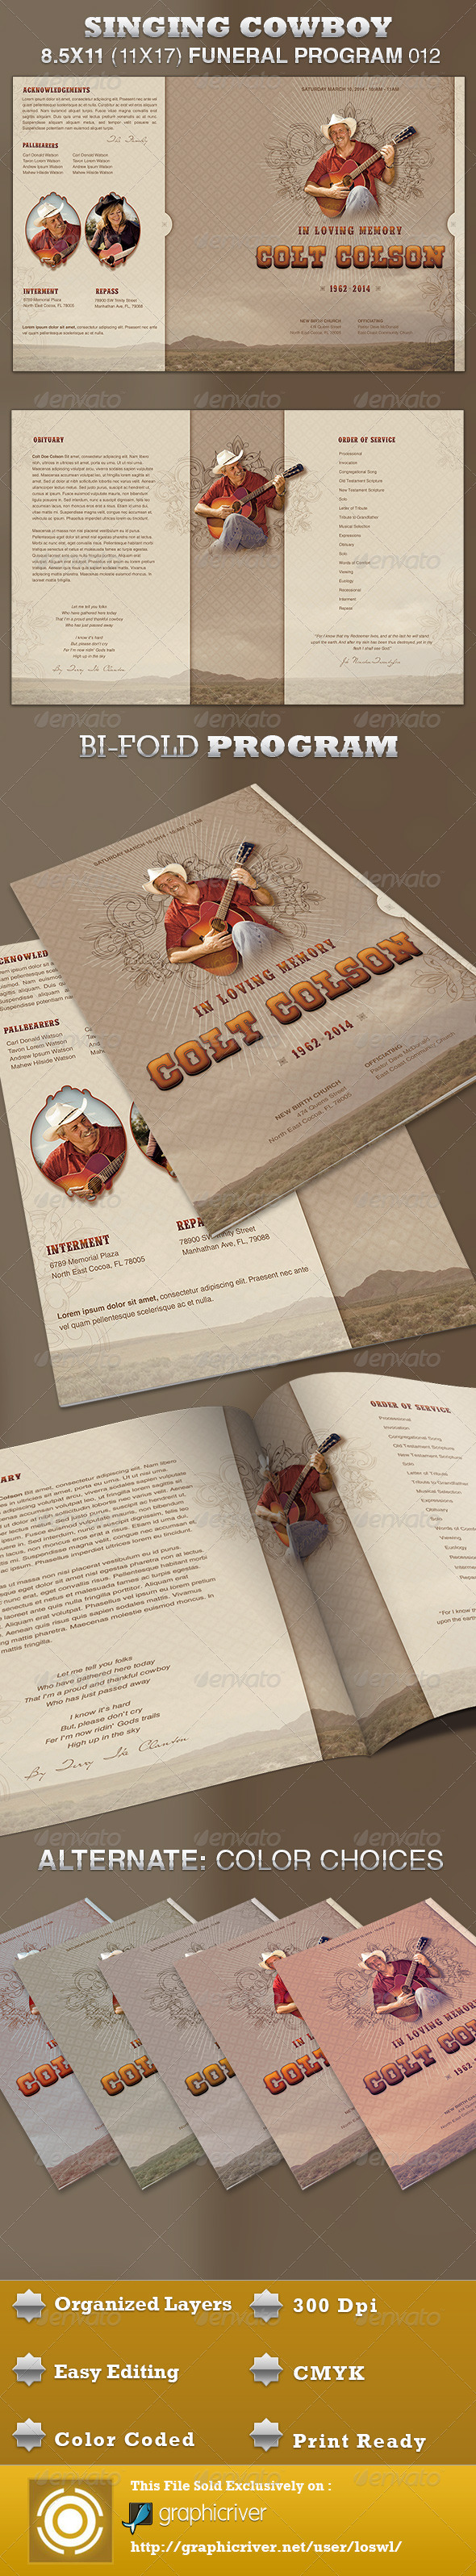 GraphicRiver Singing Cowboy Funeral Program Template 012 3986626